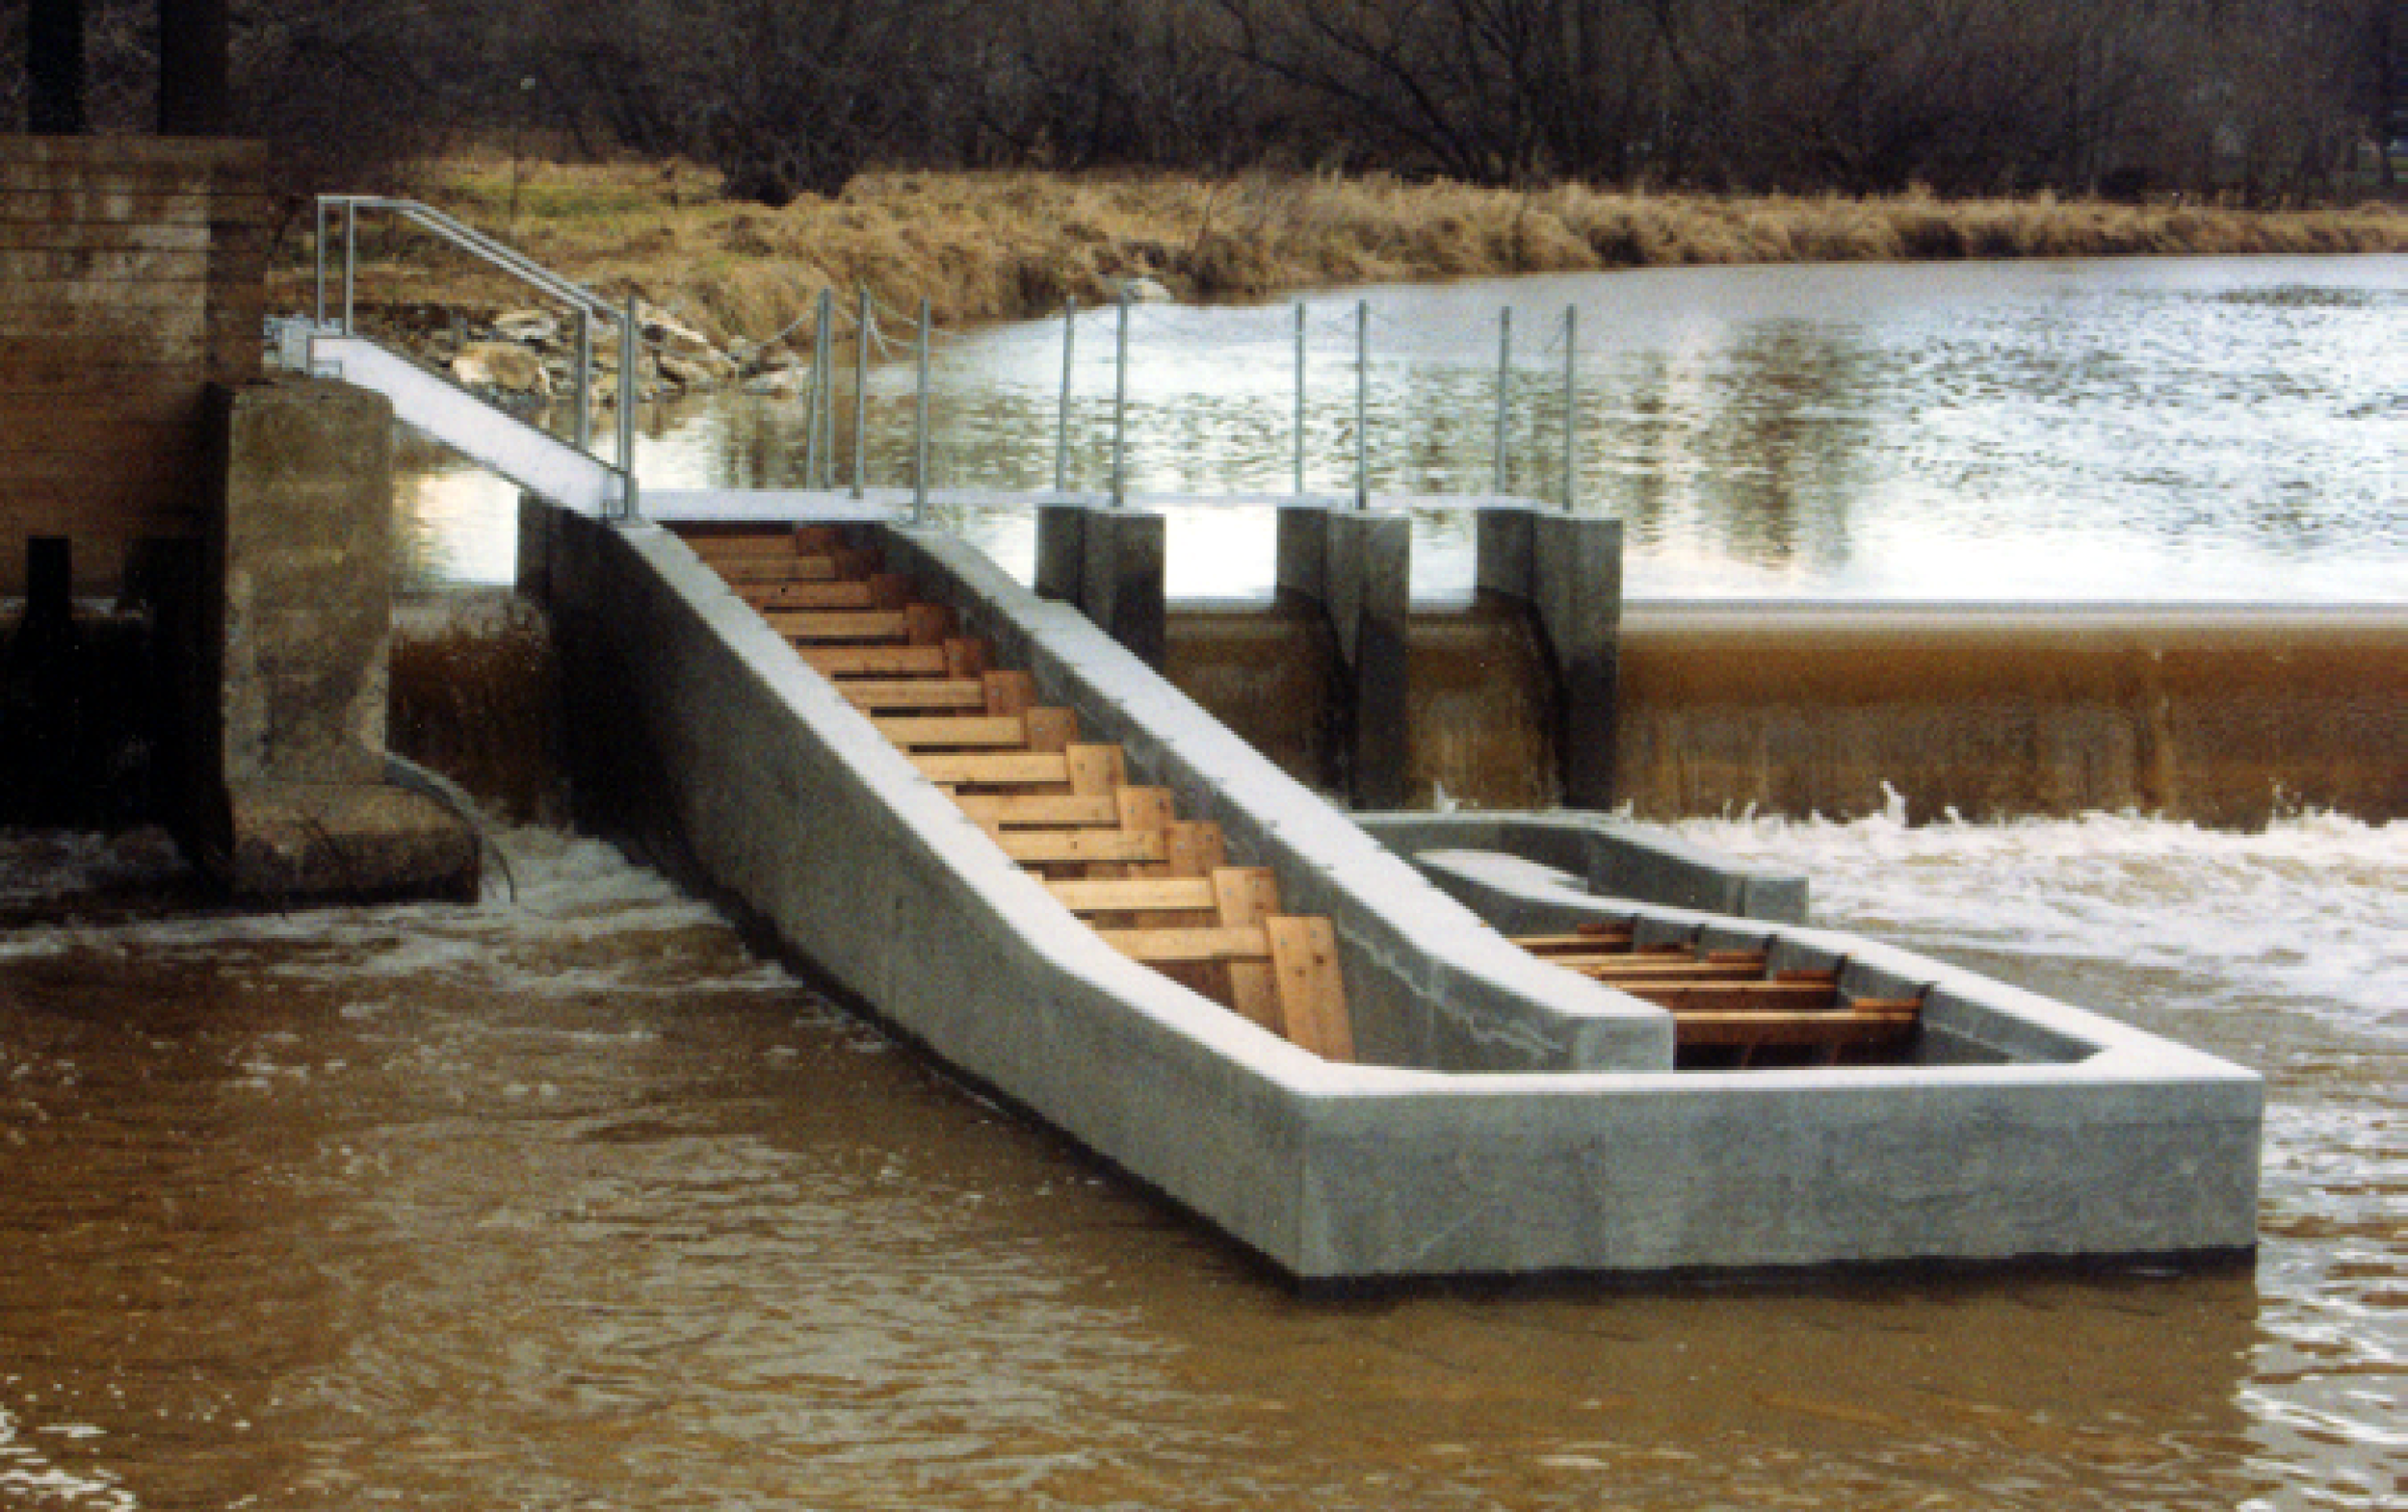 FISH PASS AT CONESTOGA WATER TREATMENT PLANT DAM